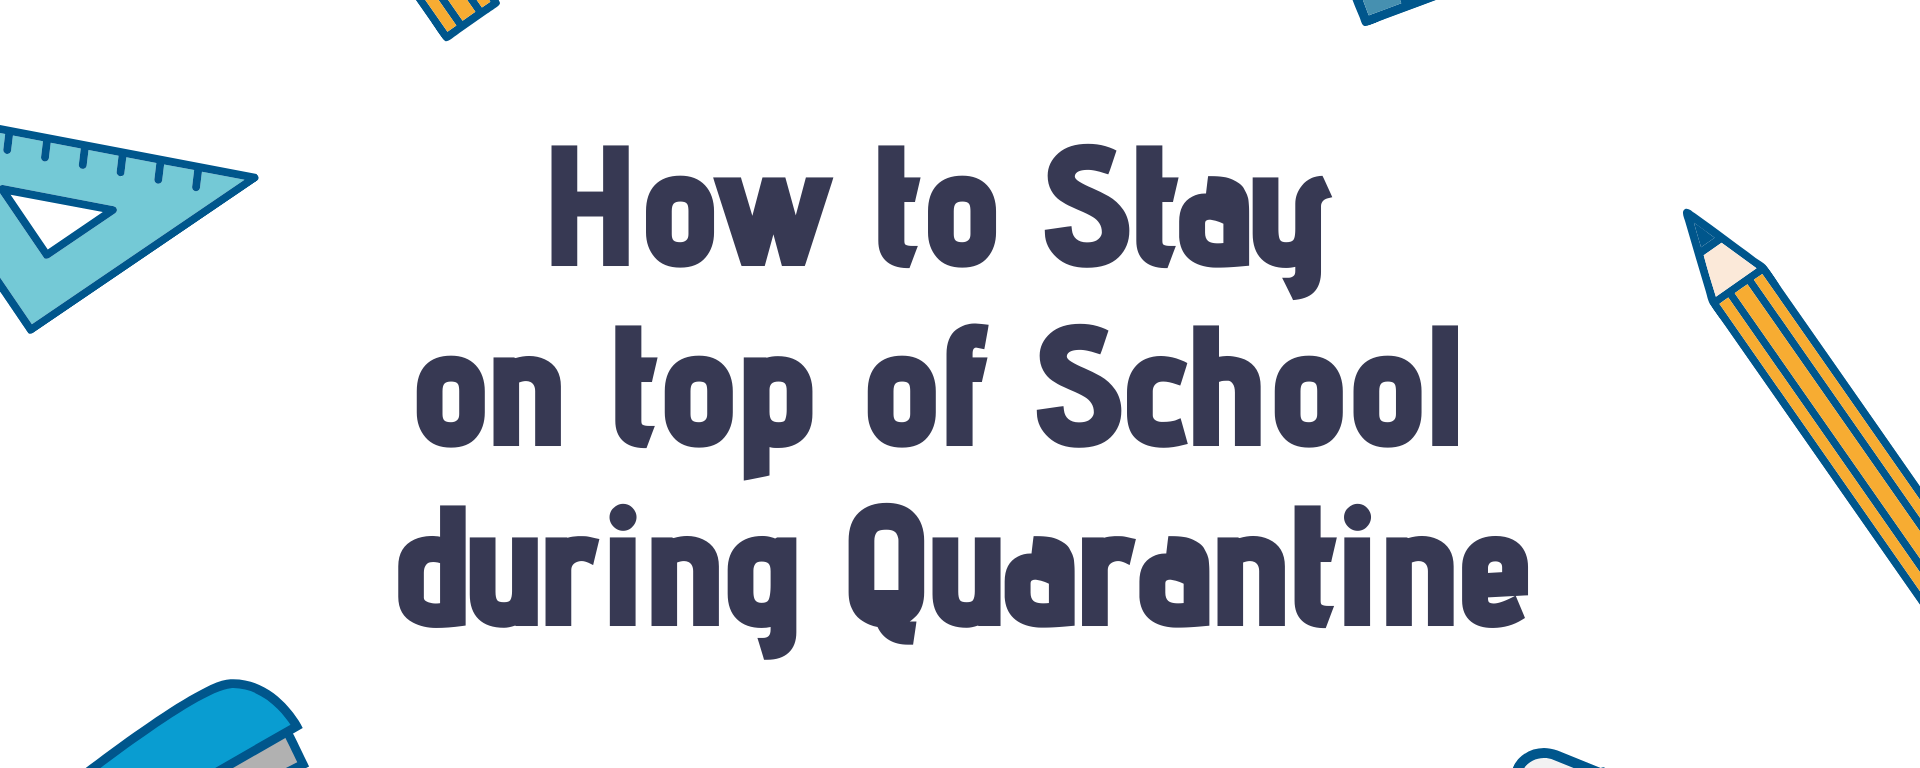 "Text that reads ""How to stay on top of school during quarantine"" with various school supplies surrounding it."